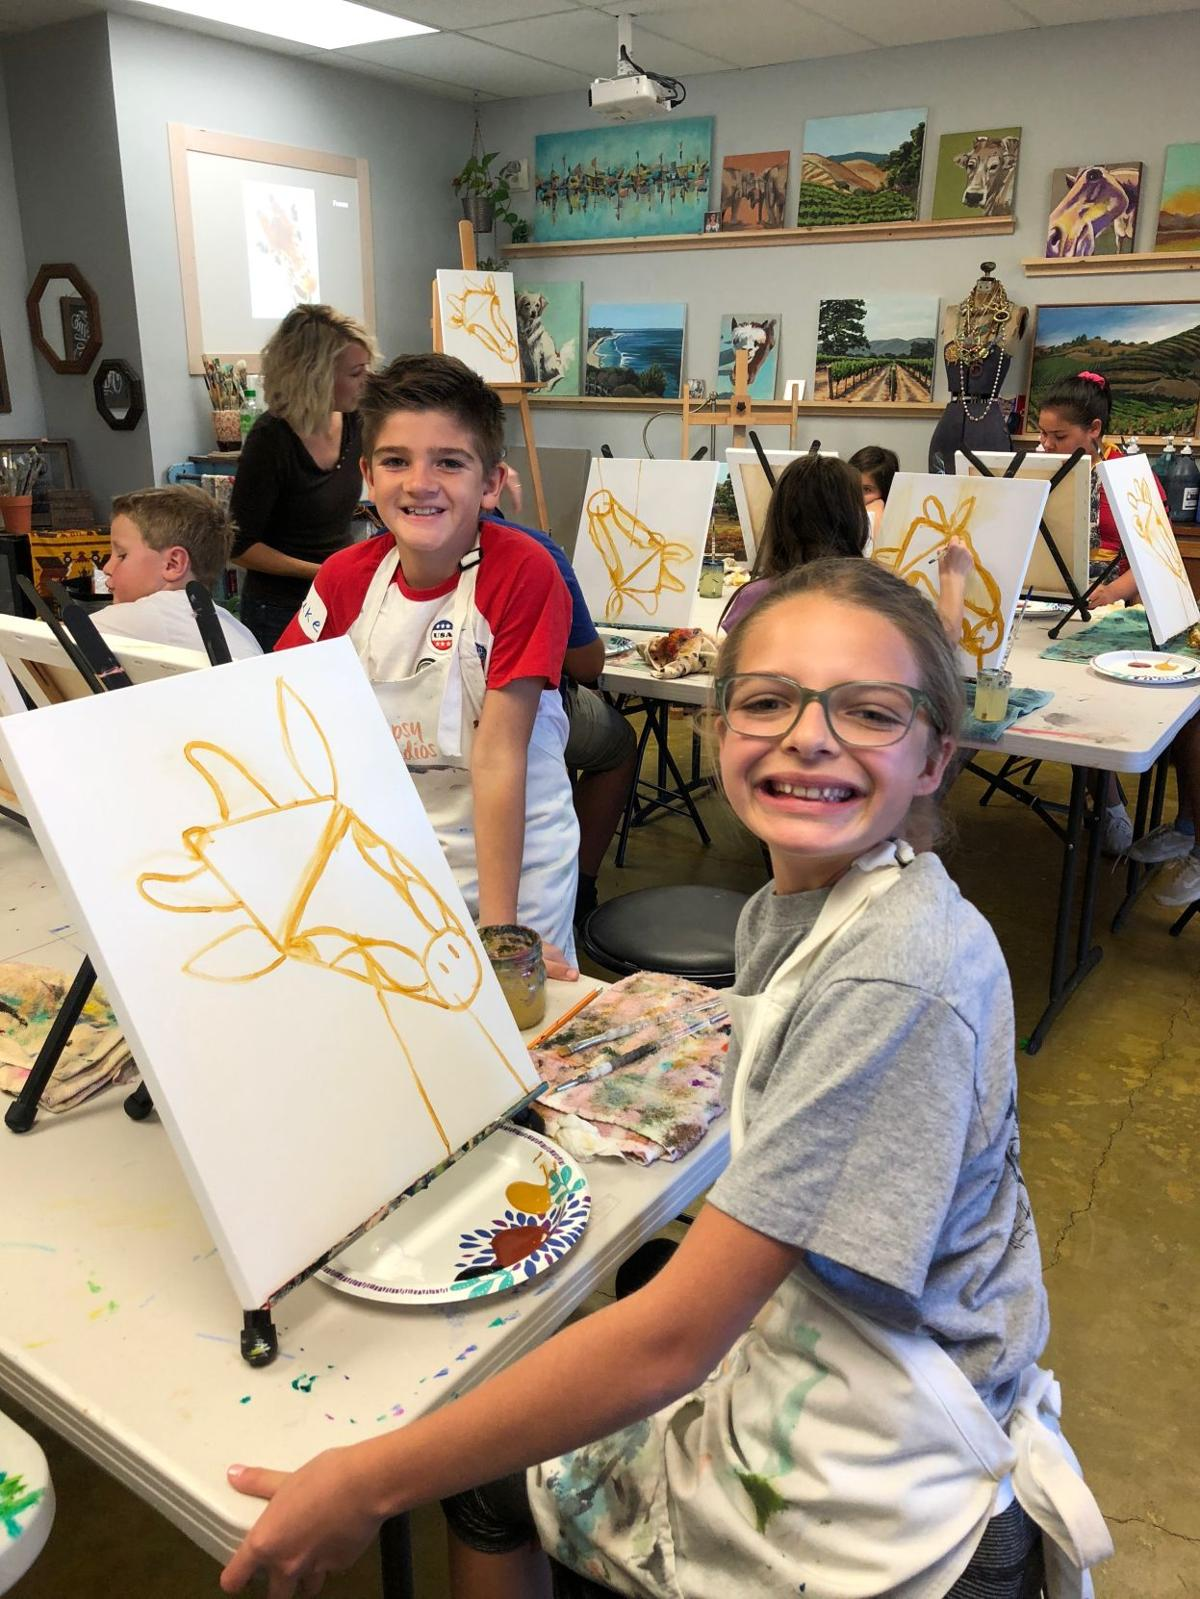 Children painting during Gypsy Studios Art Kids Camp